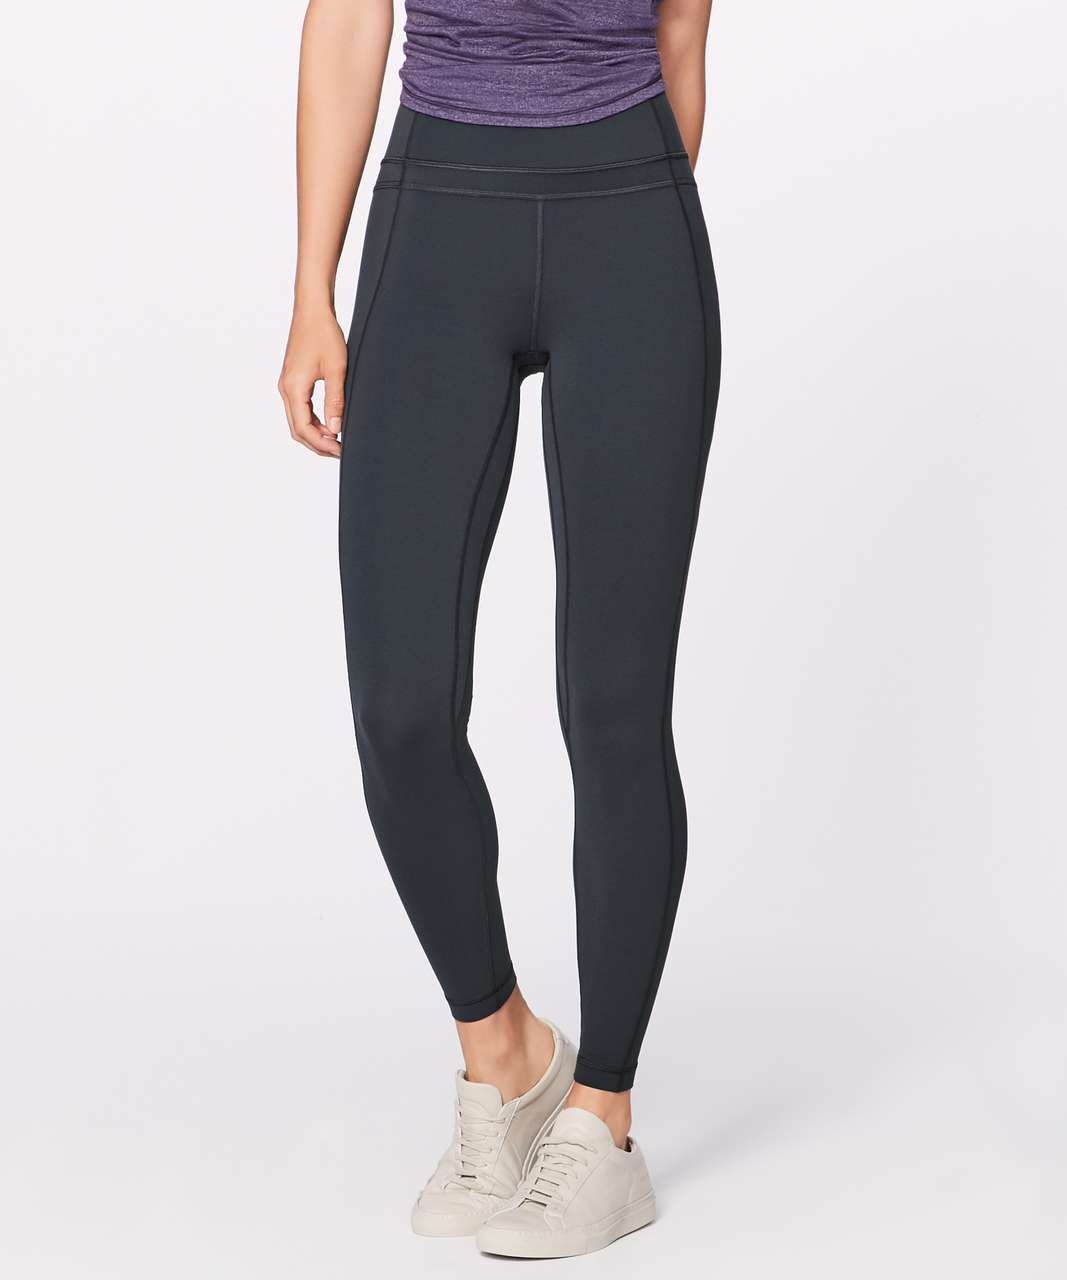 4ee2b233d3 Lululemon Pushing Limits 7/8 Tight (Nulu 25